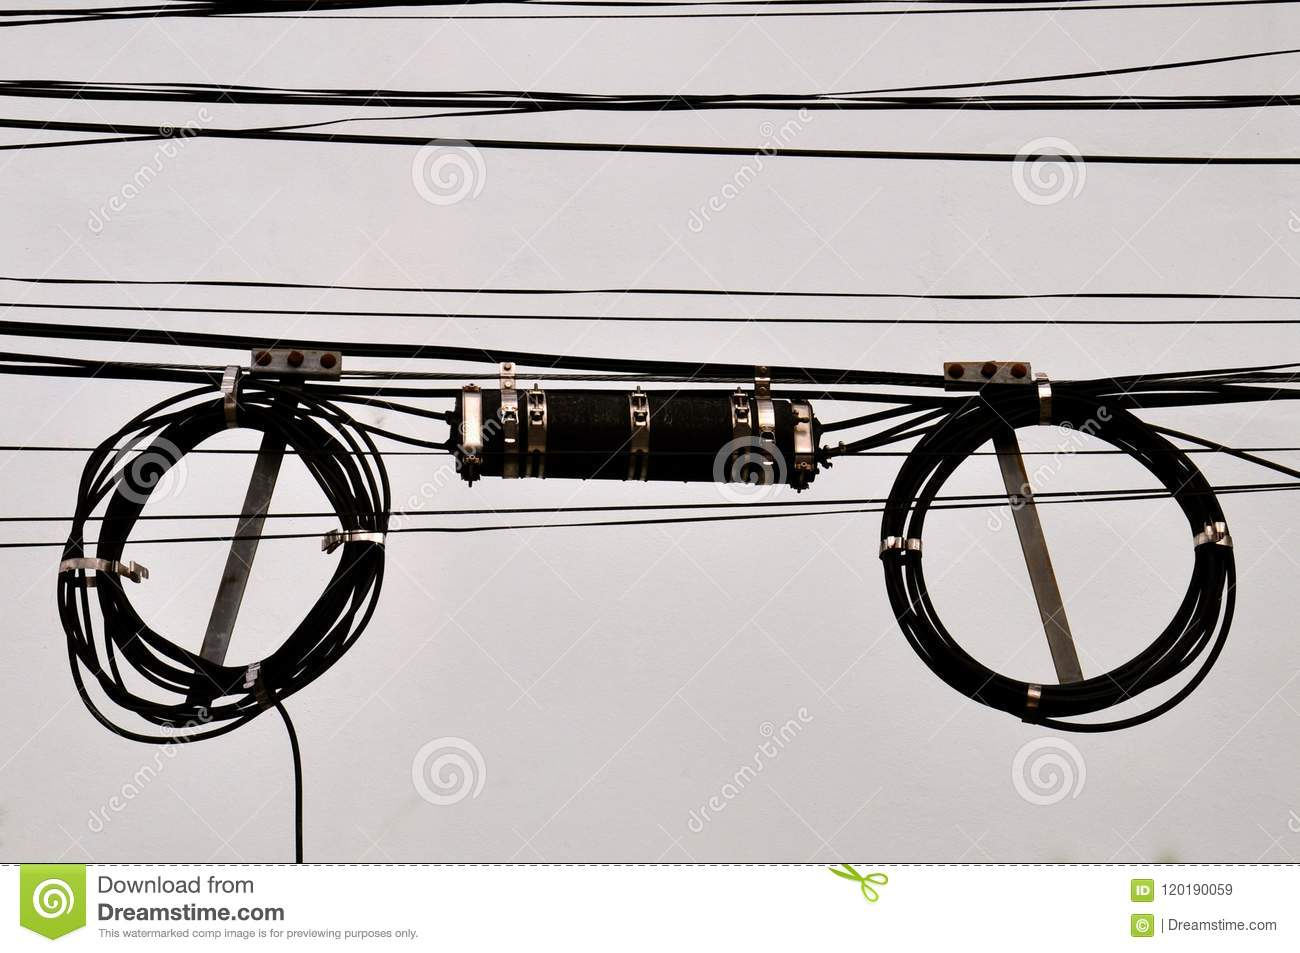 Coiled Telephone Wires And Junction Box Stock Image - Image ... on